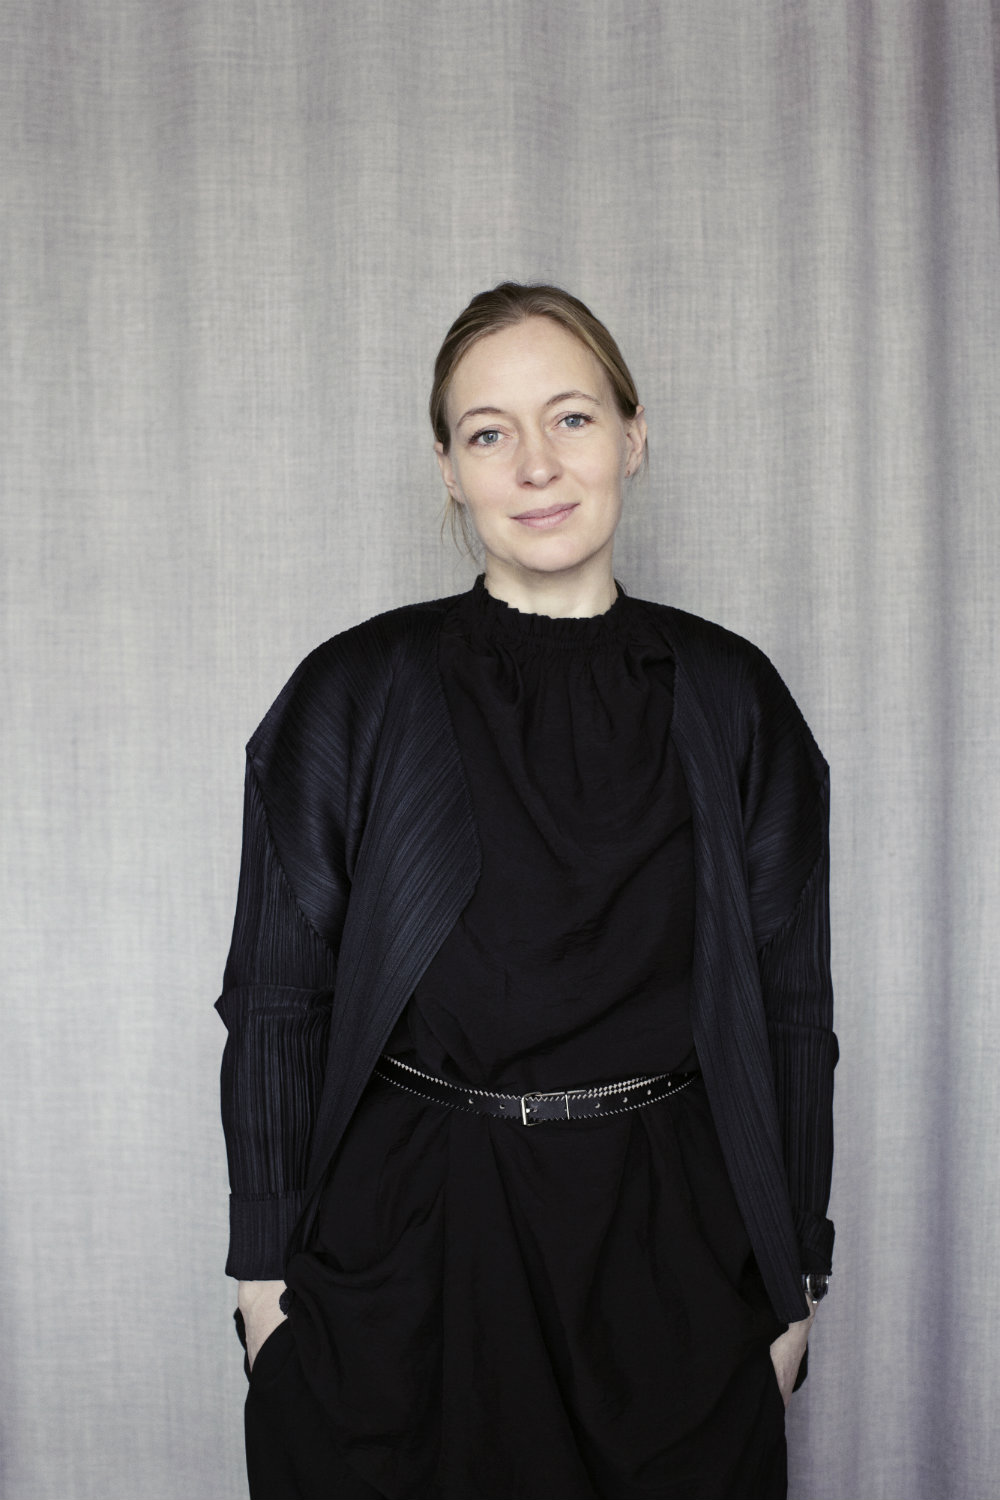 Cecilie Manz is The Designer of the Year Maison et Objet 2018 1 maison et objet 2018 Cecilie Manz is The Designer of the Year Maison et Objet 2018 Cecilie Manz is The Designer of the Year Maison et Objet 2018 1